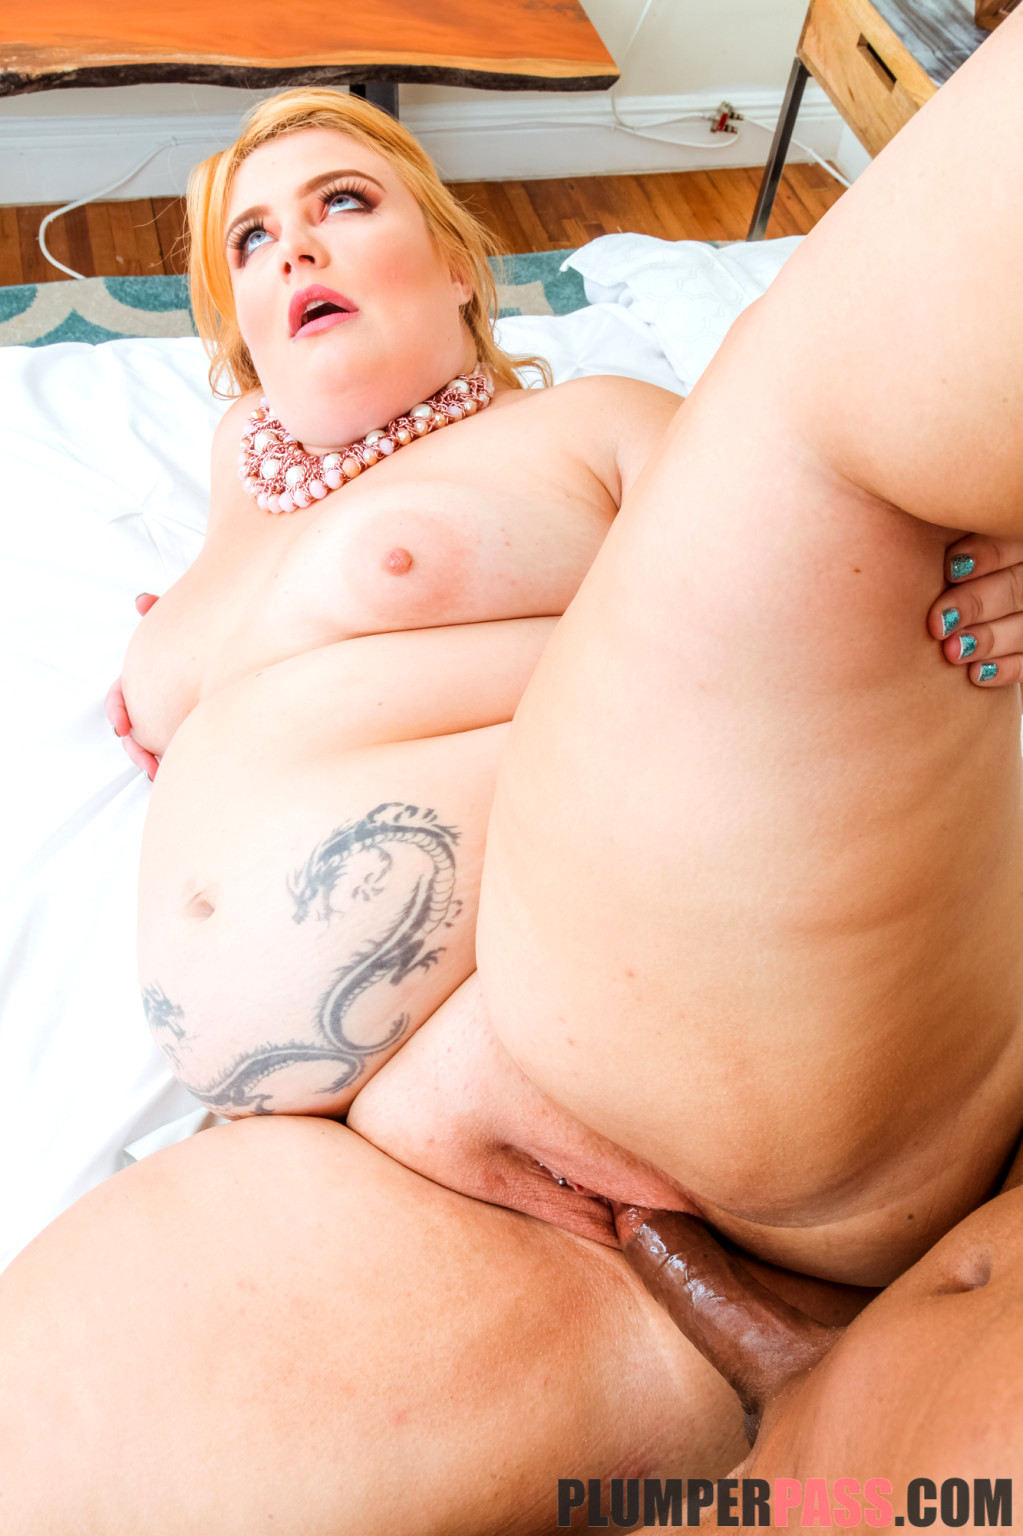 Plump Stars nude pics, images and galleries